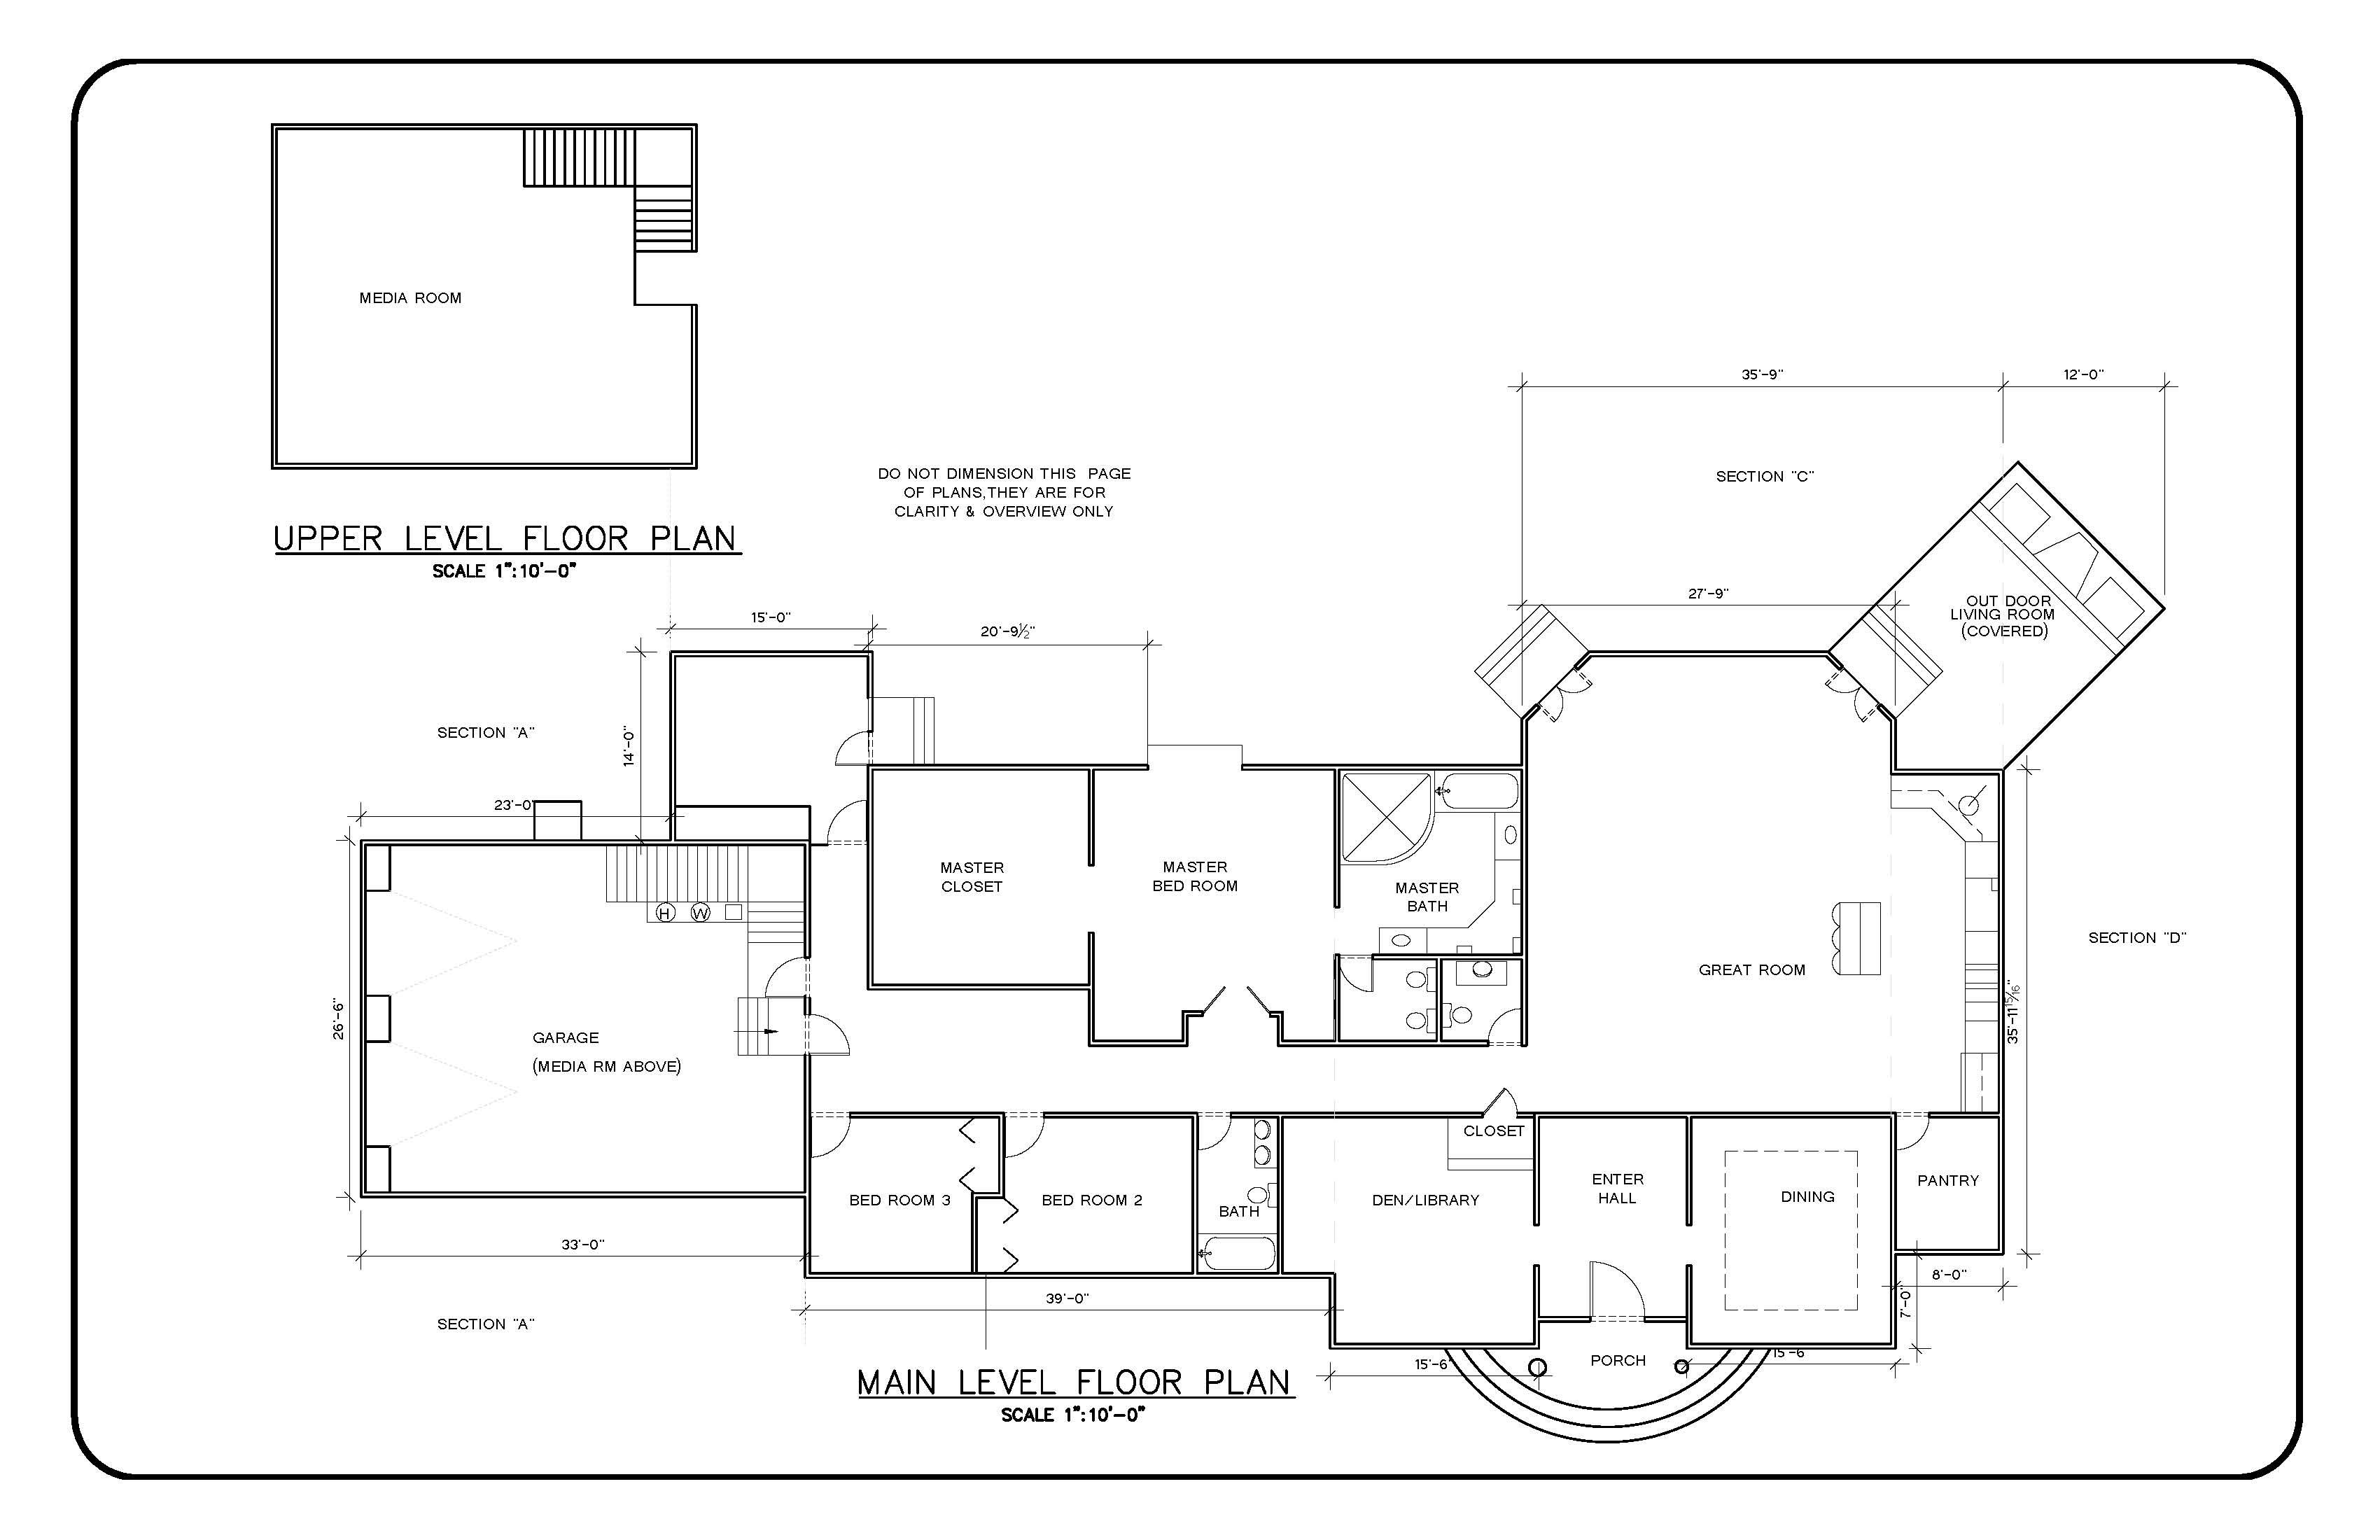 Architectural floor plan architectural drawings for Floor plan drafting services